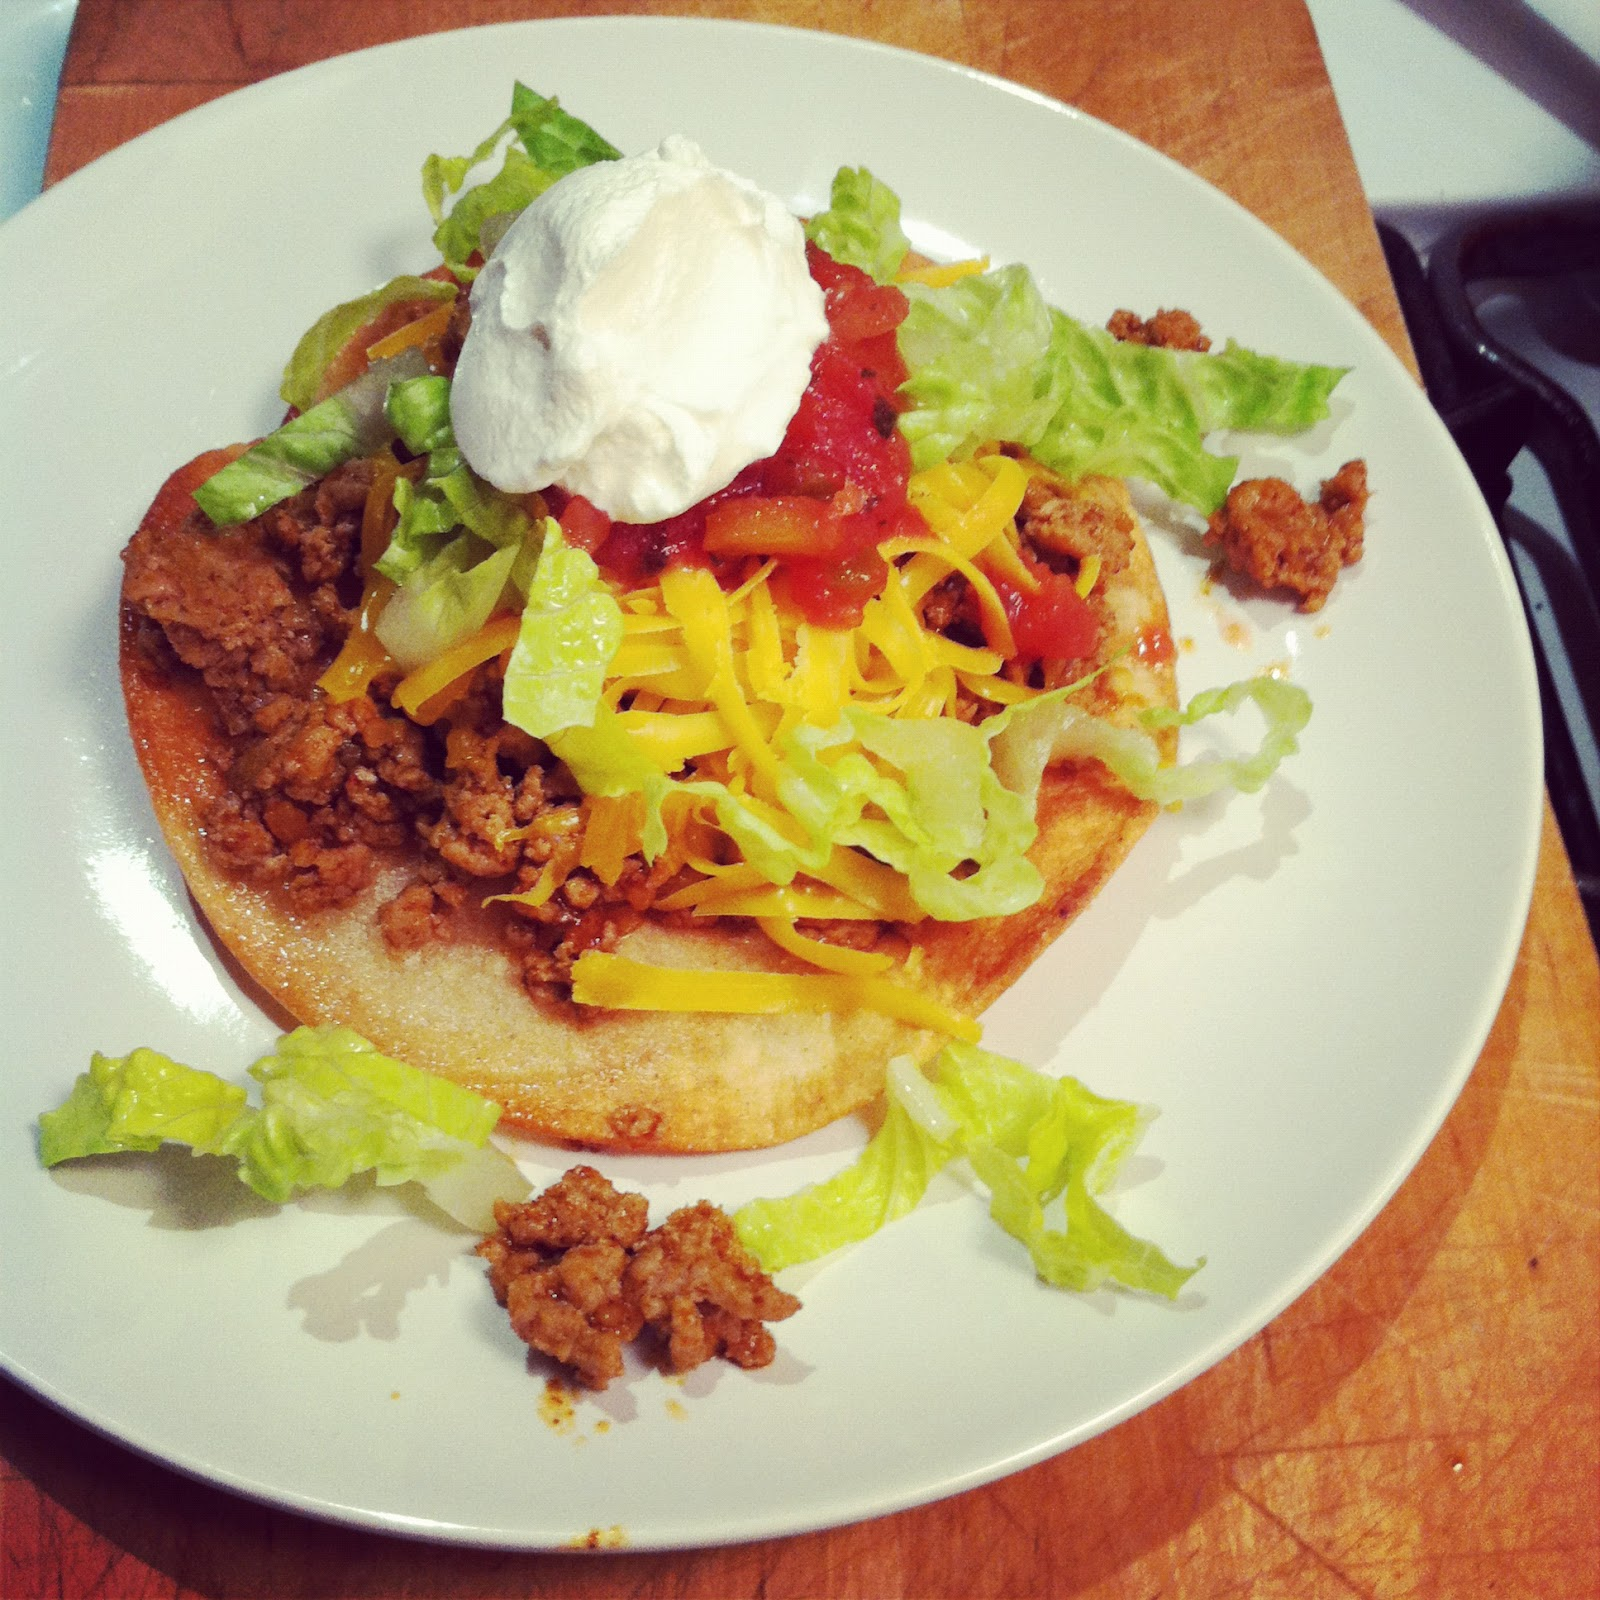 Quest for Delish: Tostada